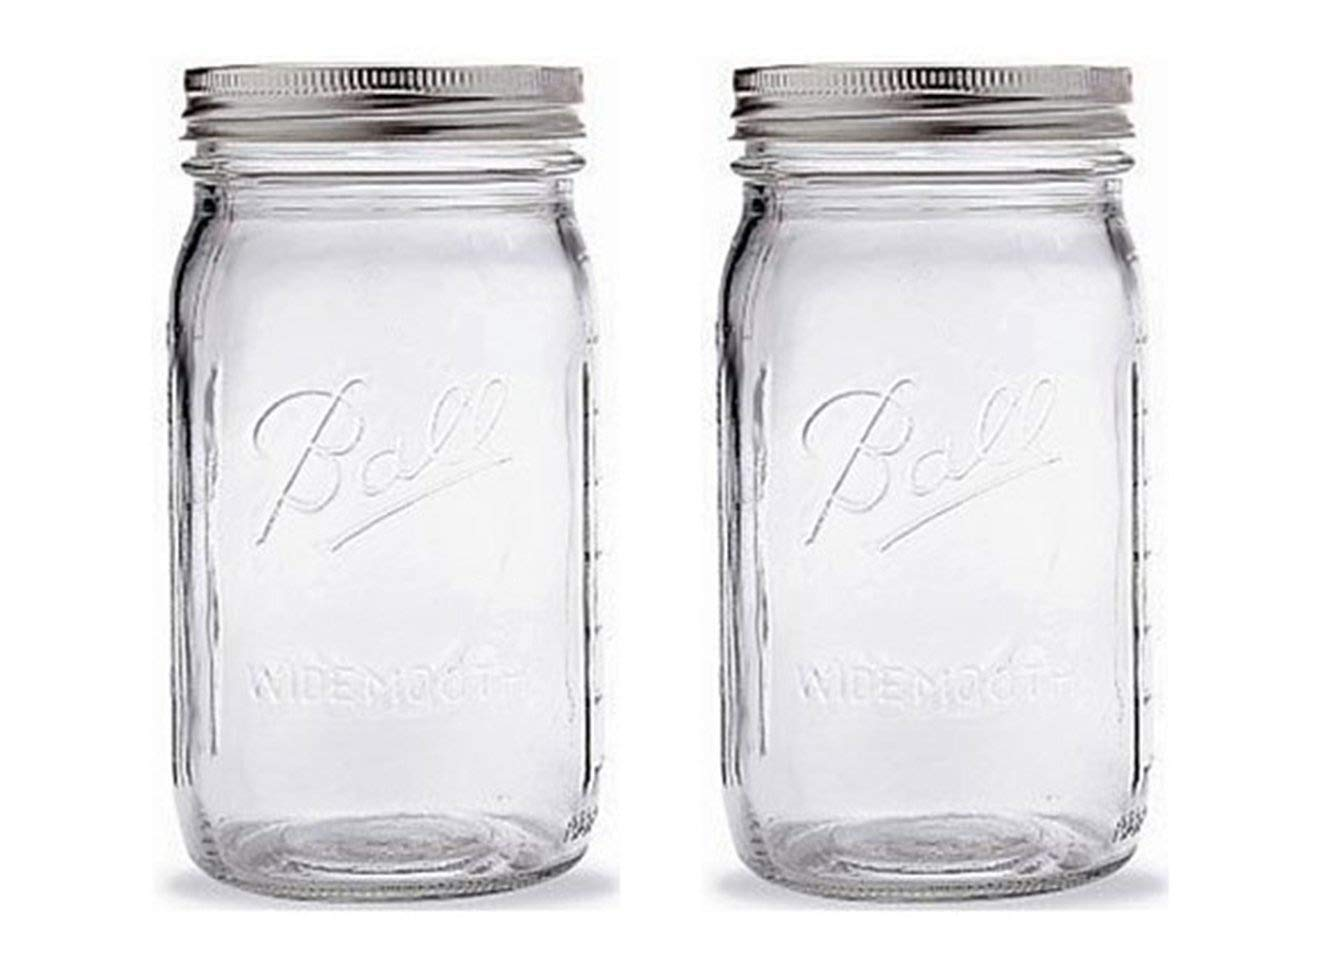 Ball Mason Jar-32 oz. Clear Glass Ball Wide Mouth-Set of 2